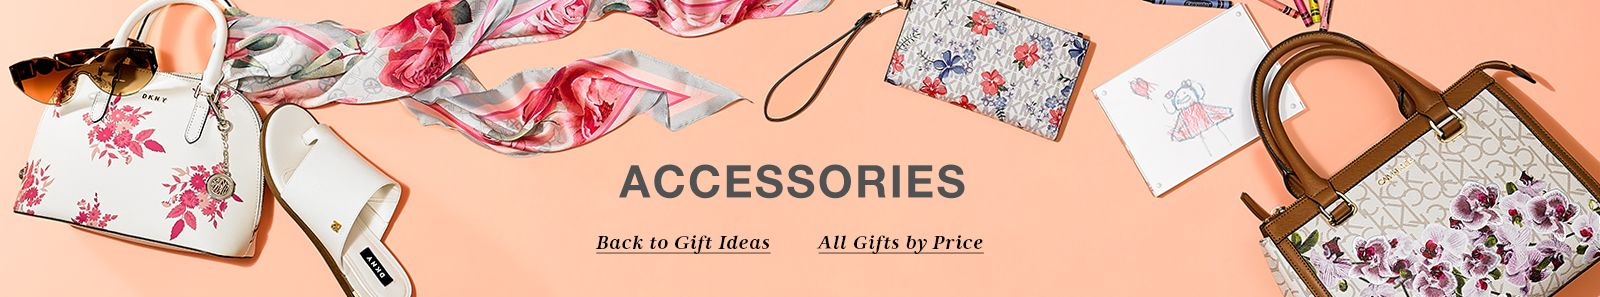 Accessories, Back to Gift Ideas, All Gifts by Price